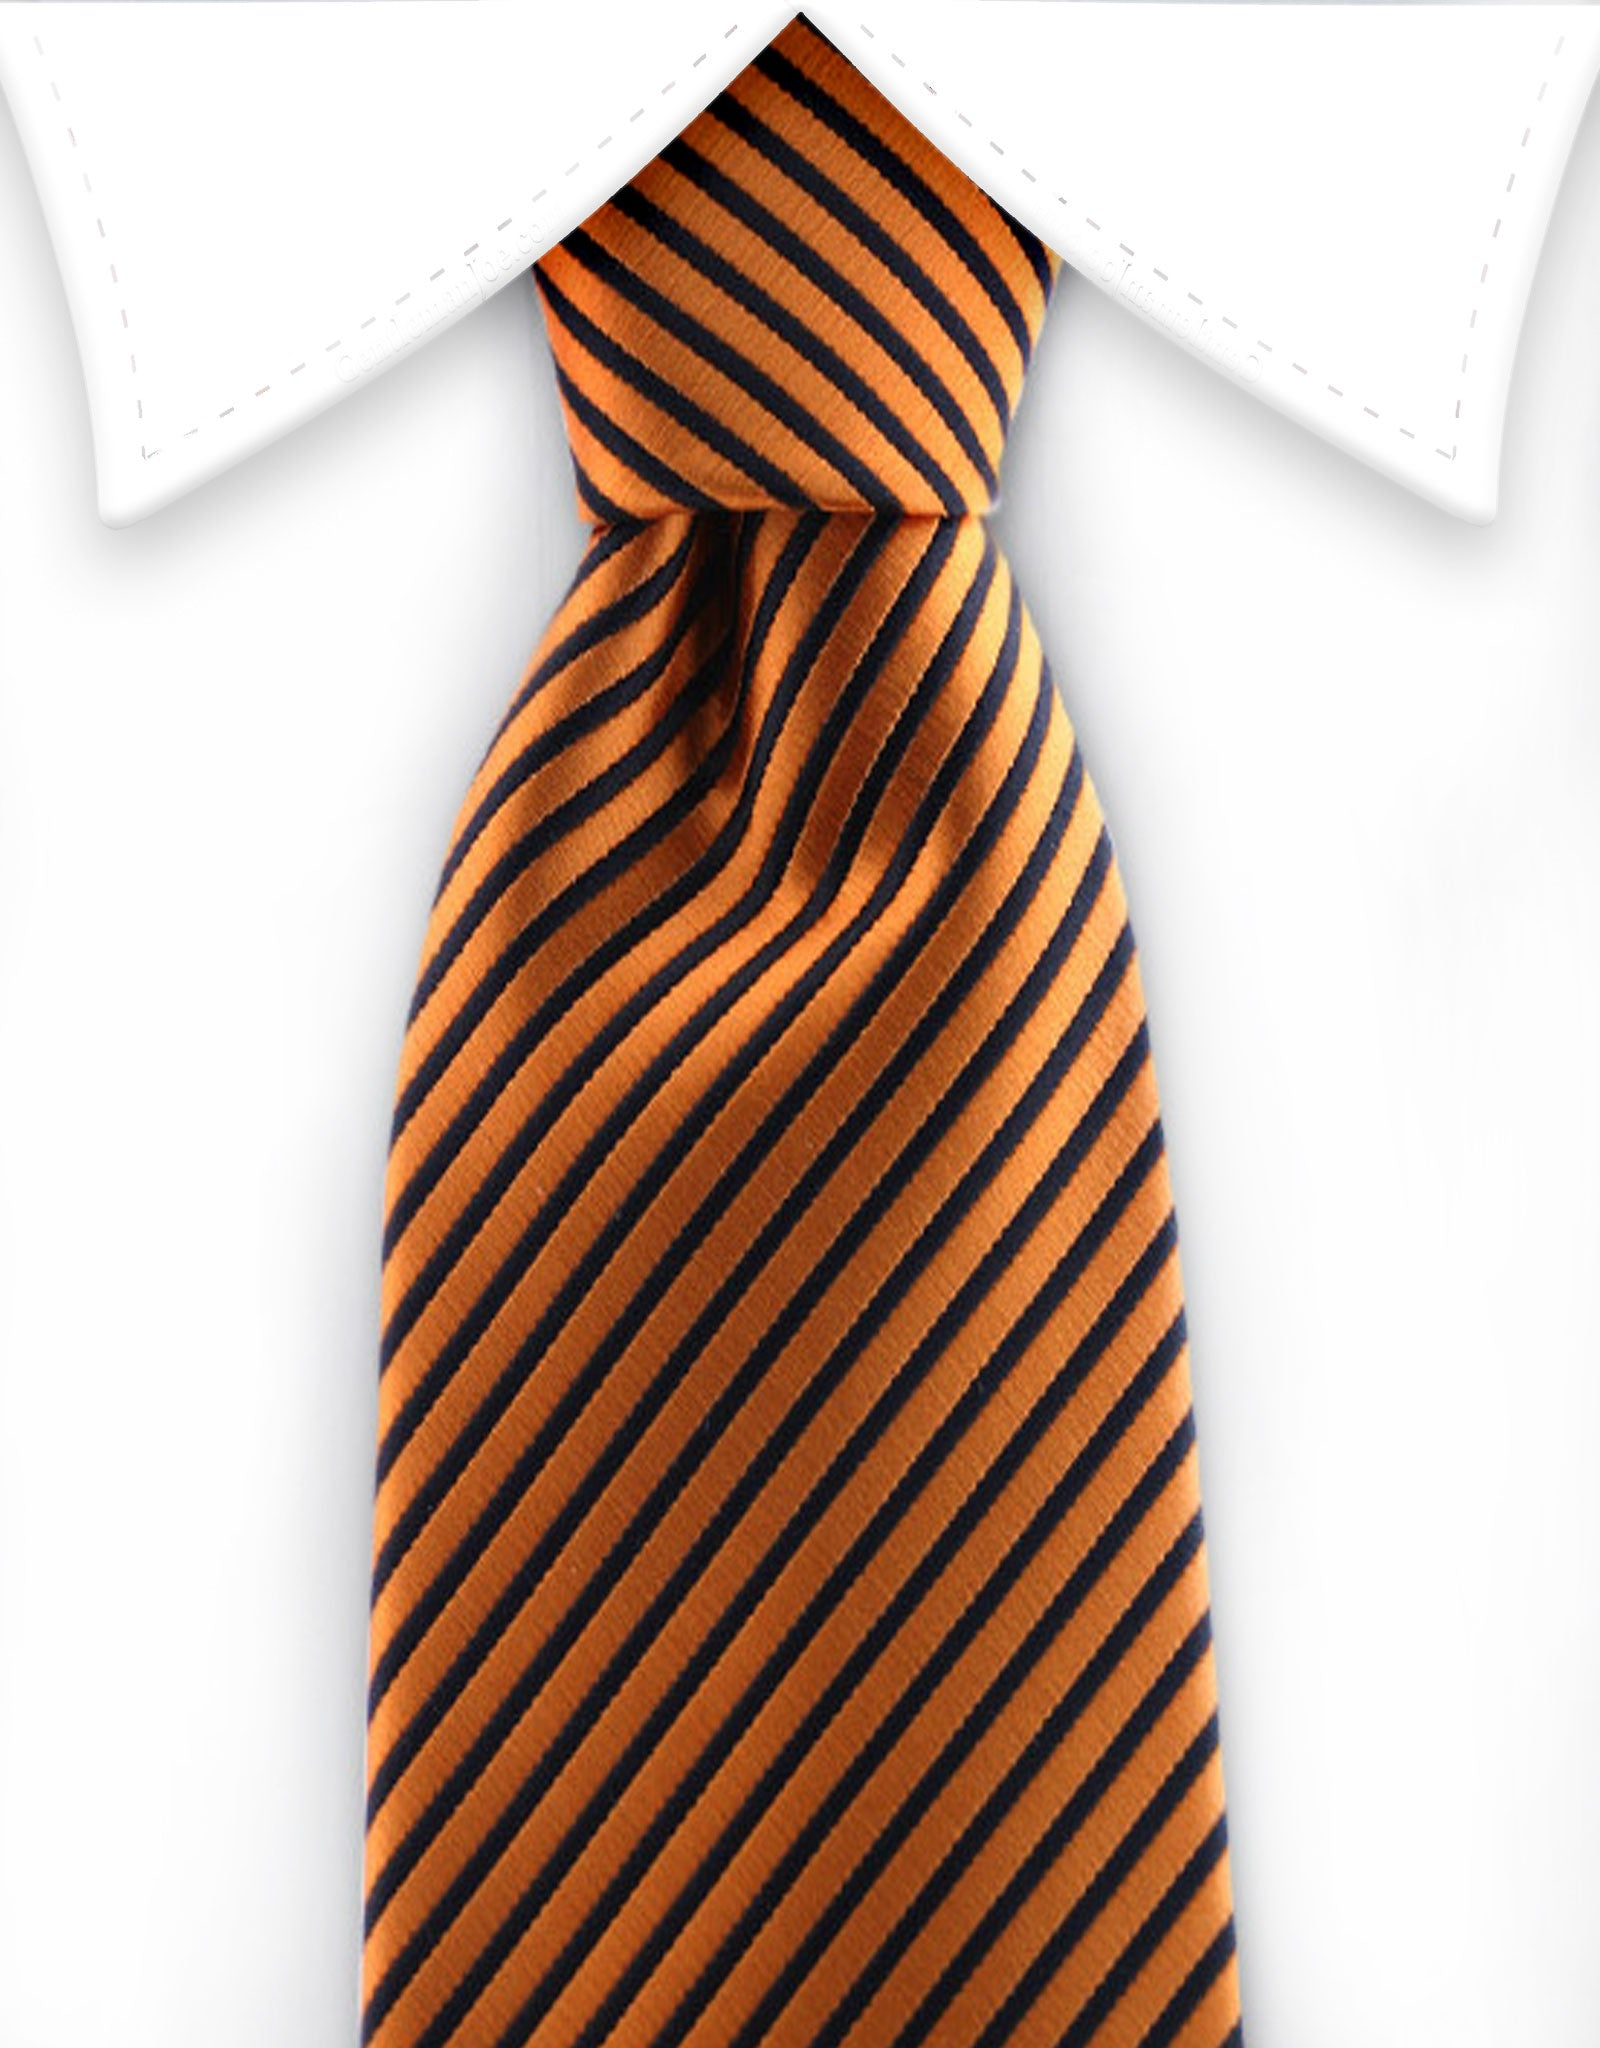 Orange and Black Striped Boy's Tie